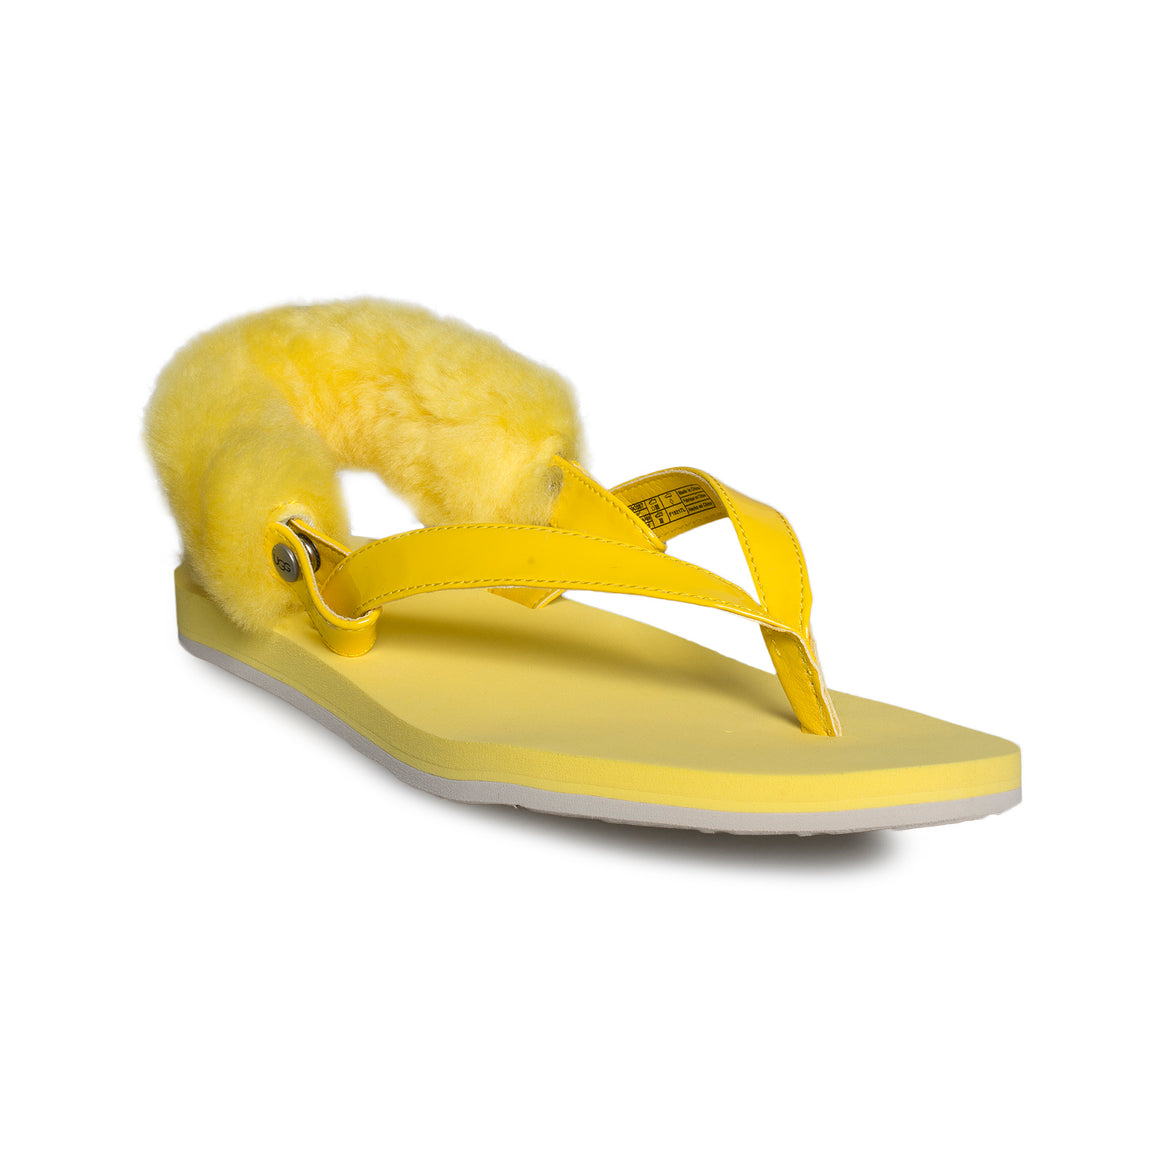 UGG LaaLaa Lemon Yellow Flip Flops - Women's